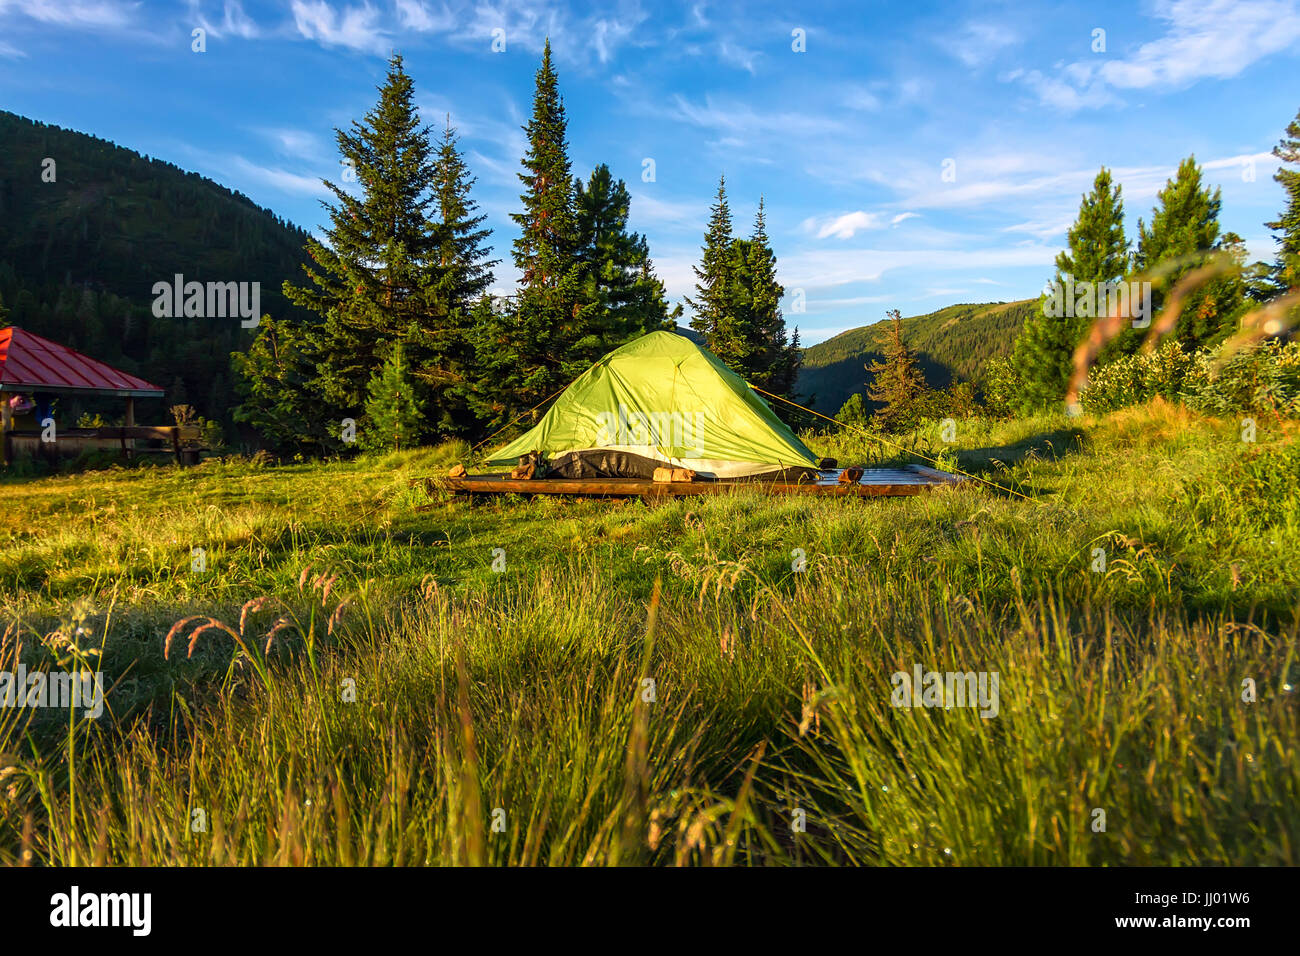 Green Tent In A Camping Base Camp The Mountains